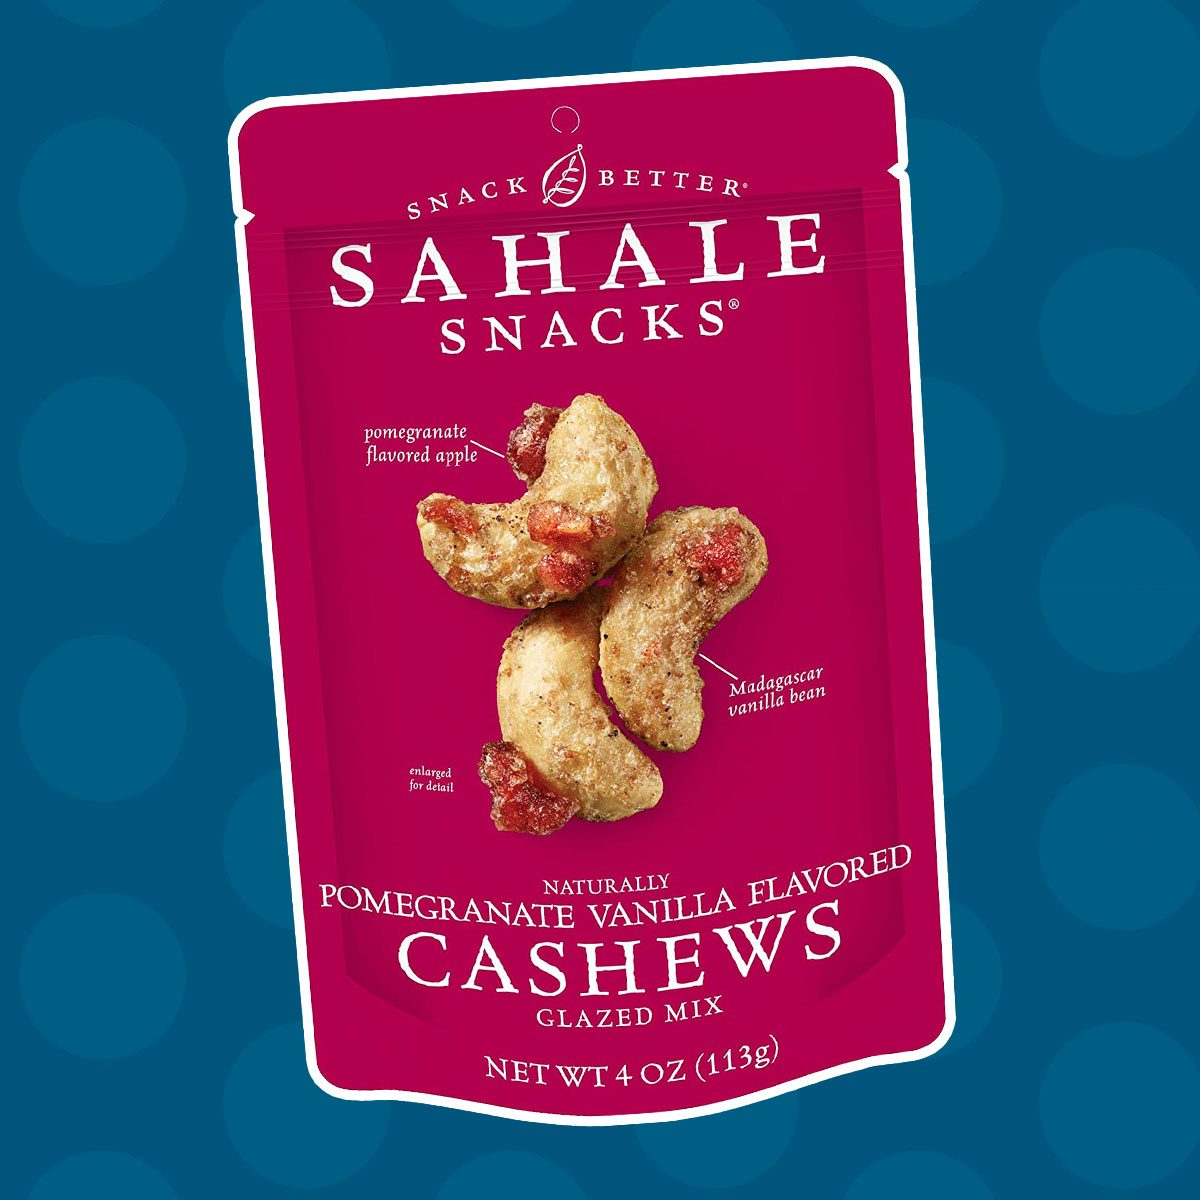 Sahale Snacks Pomegranate Vanilla Cashews